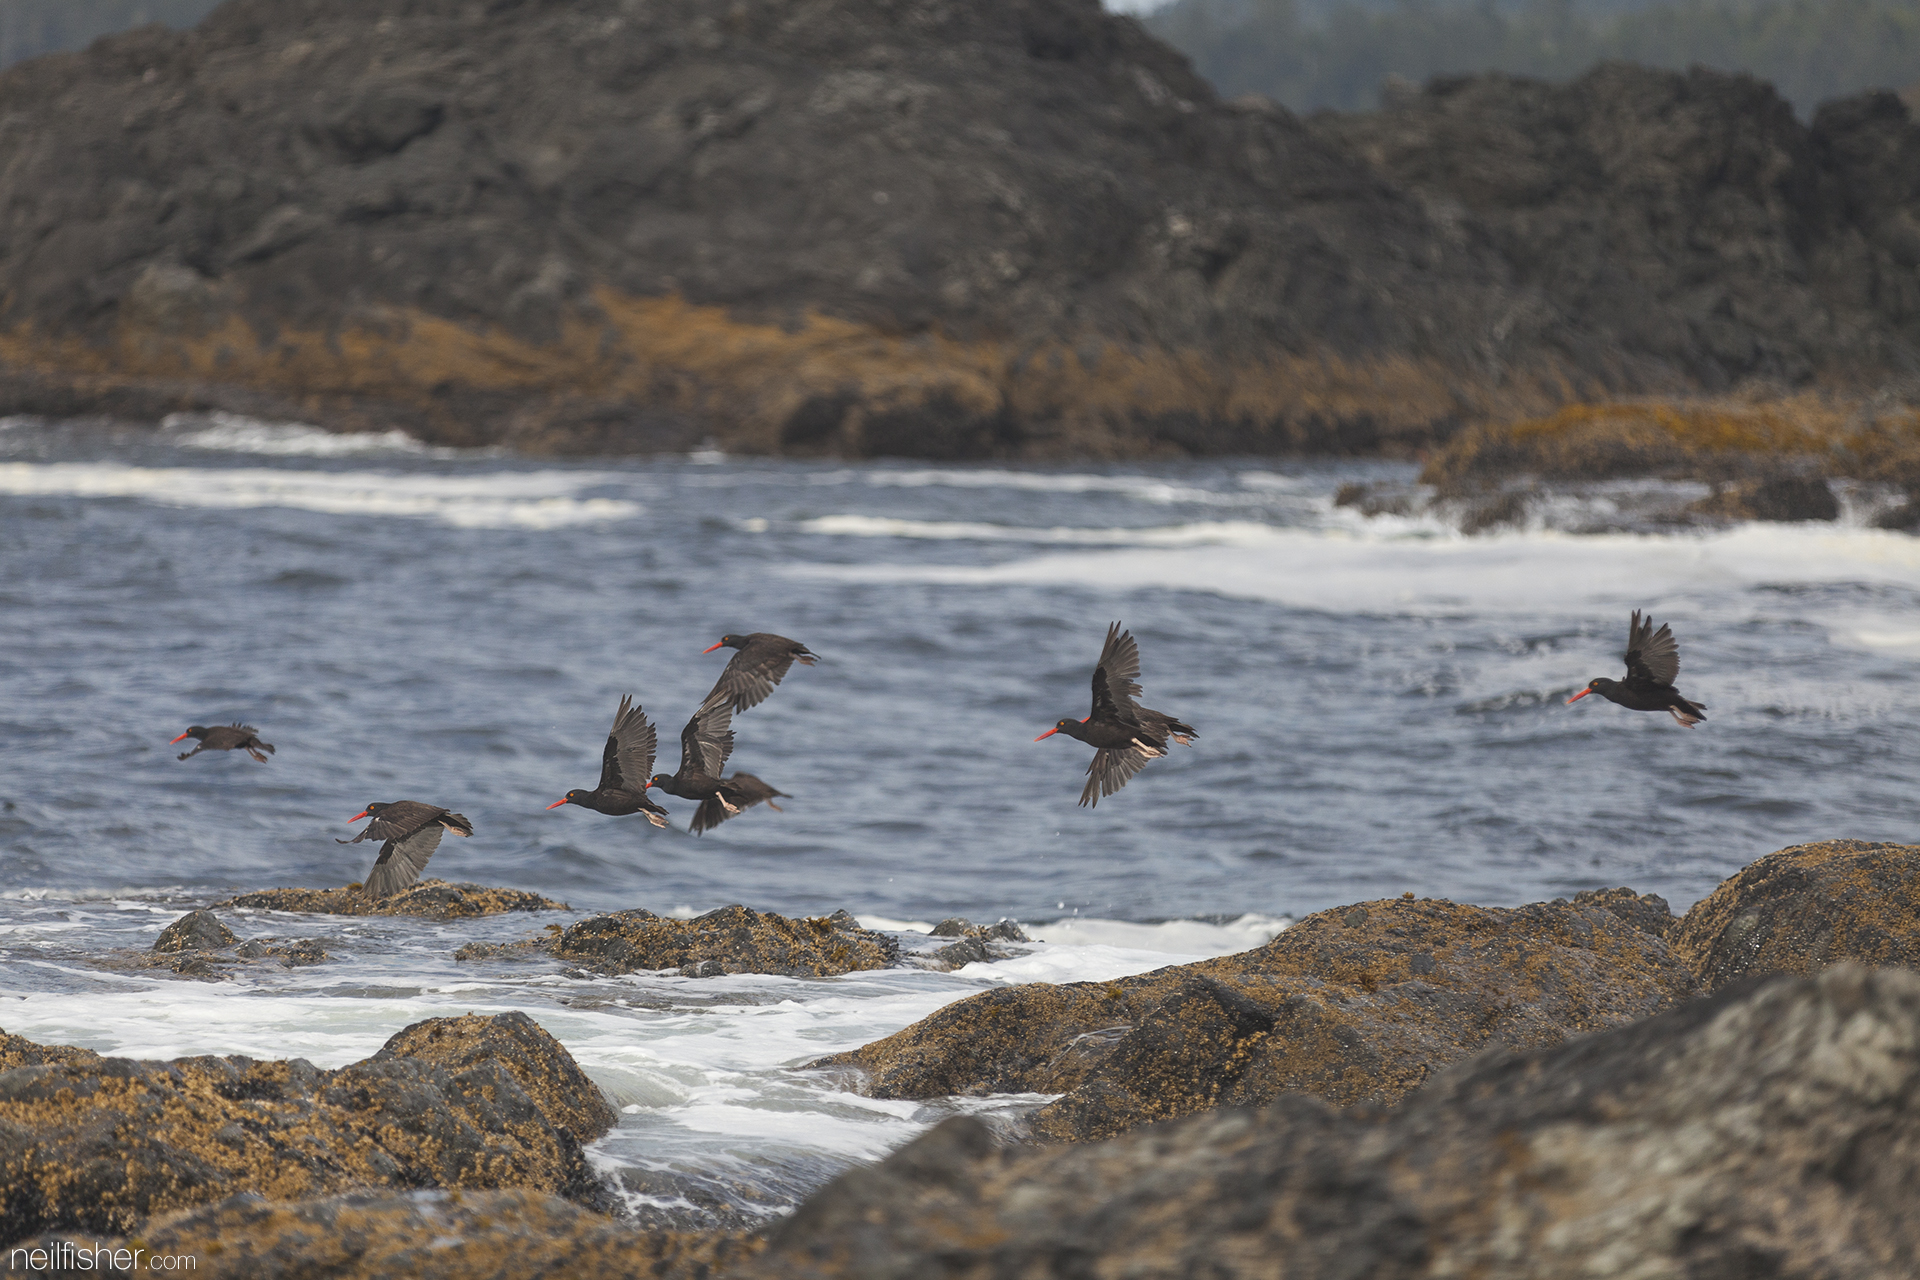 Here are a group of black oyster catchers in flight off the shore of Box Island. Ranging from the Aleutian Islands in Alaska to the coast of Baja California, these birds never stray far from shore and typically favour quieter embayments with rocky shoreline. They forage in the intertidal zone, munching on small marine invertebrates; particularly molluscs such as mussels, limpets, and chitons. EXIF 1/2500sec f/2.8 ISO400 200mm